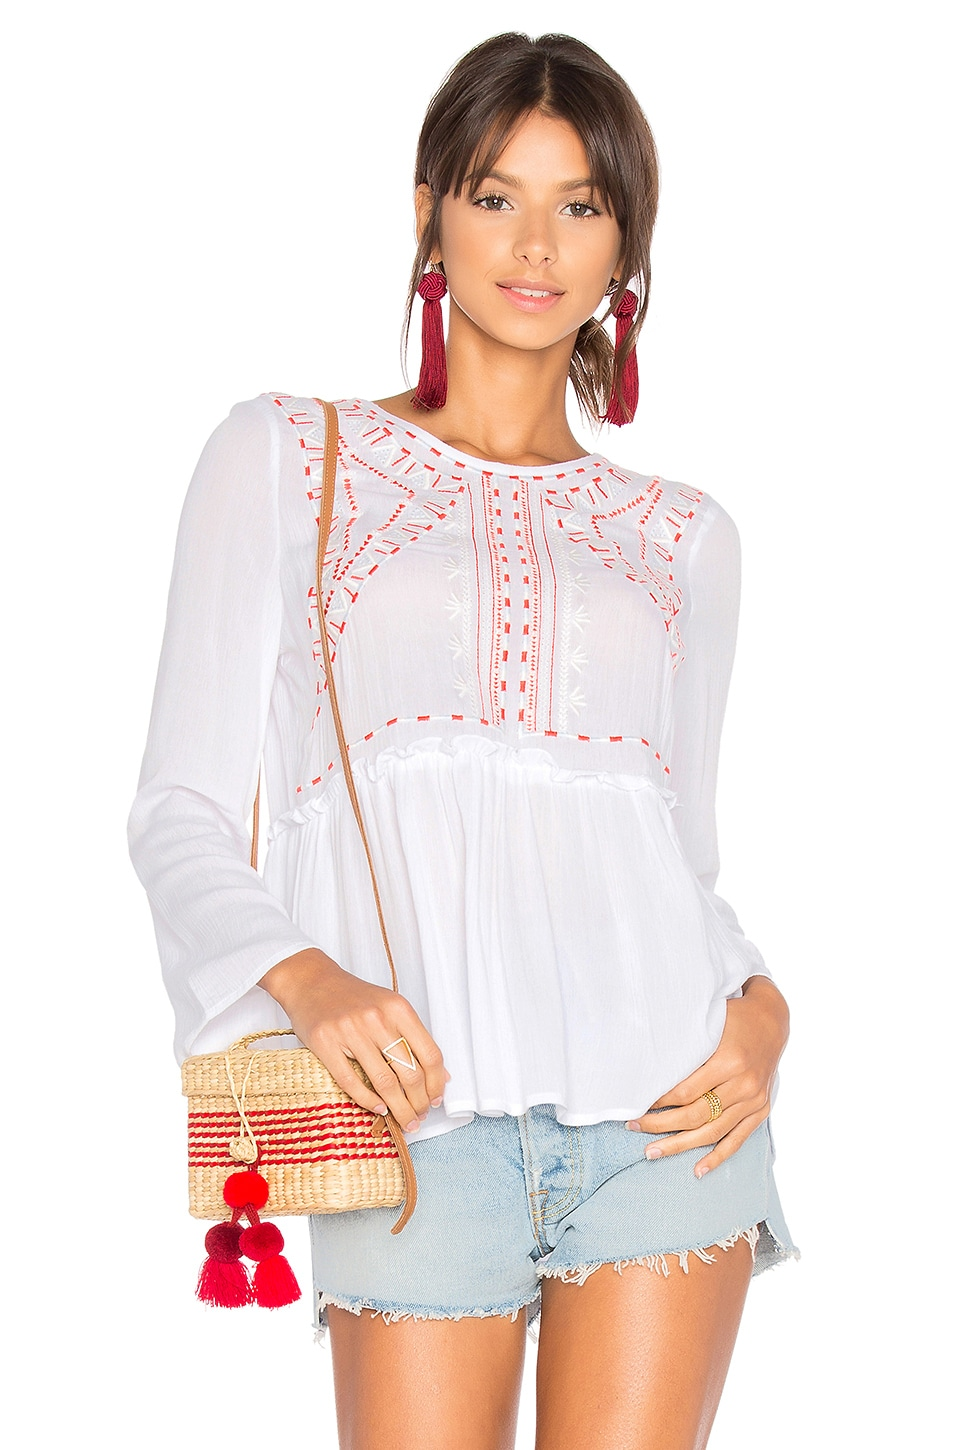 Embroidered Top by 525 america